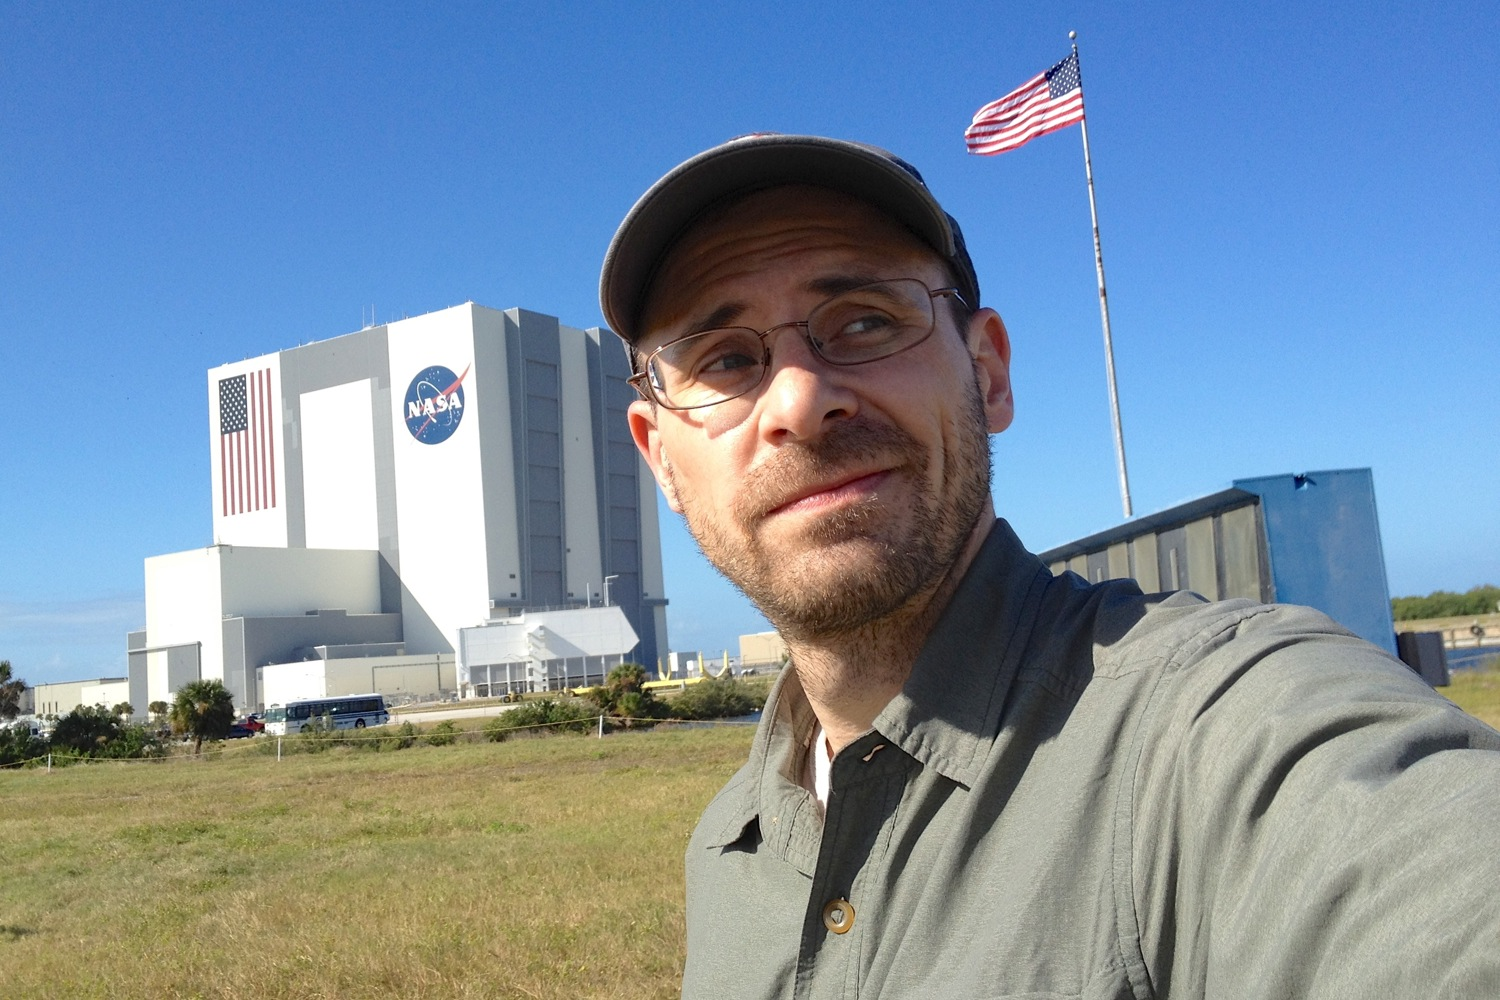 Self-portrait taken at NASA's Kennedy Space Center for the November, 2011 launch of the Mars Curiosity Rover.